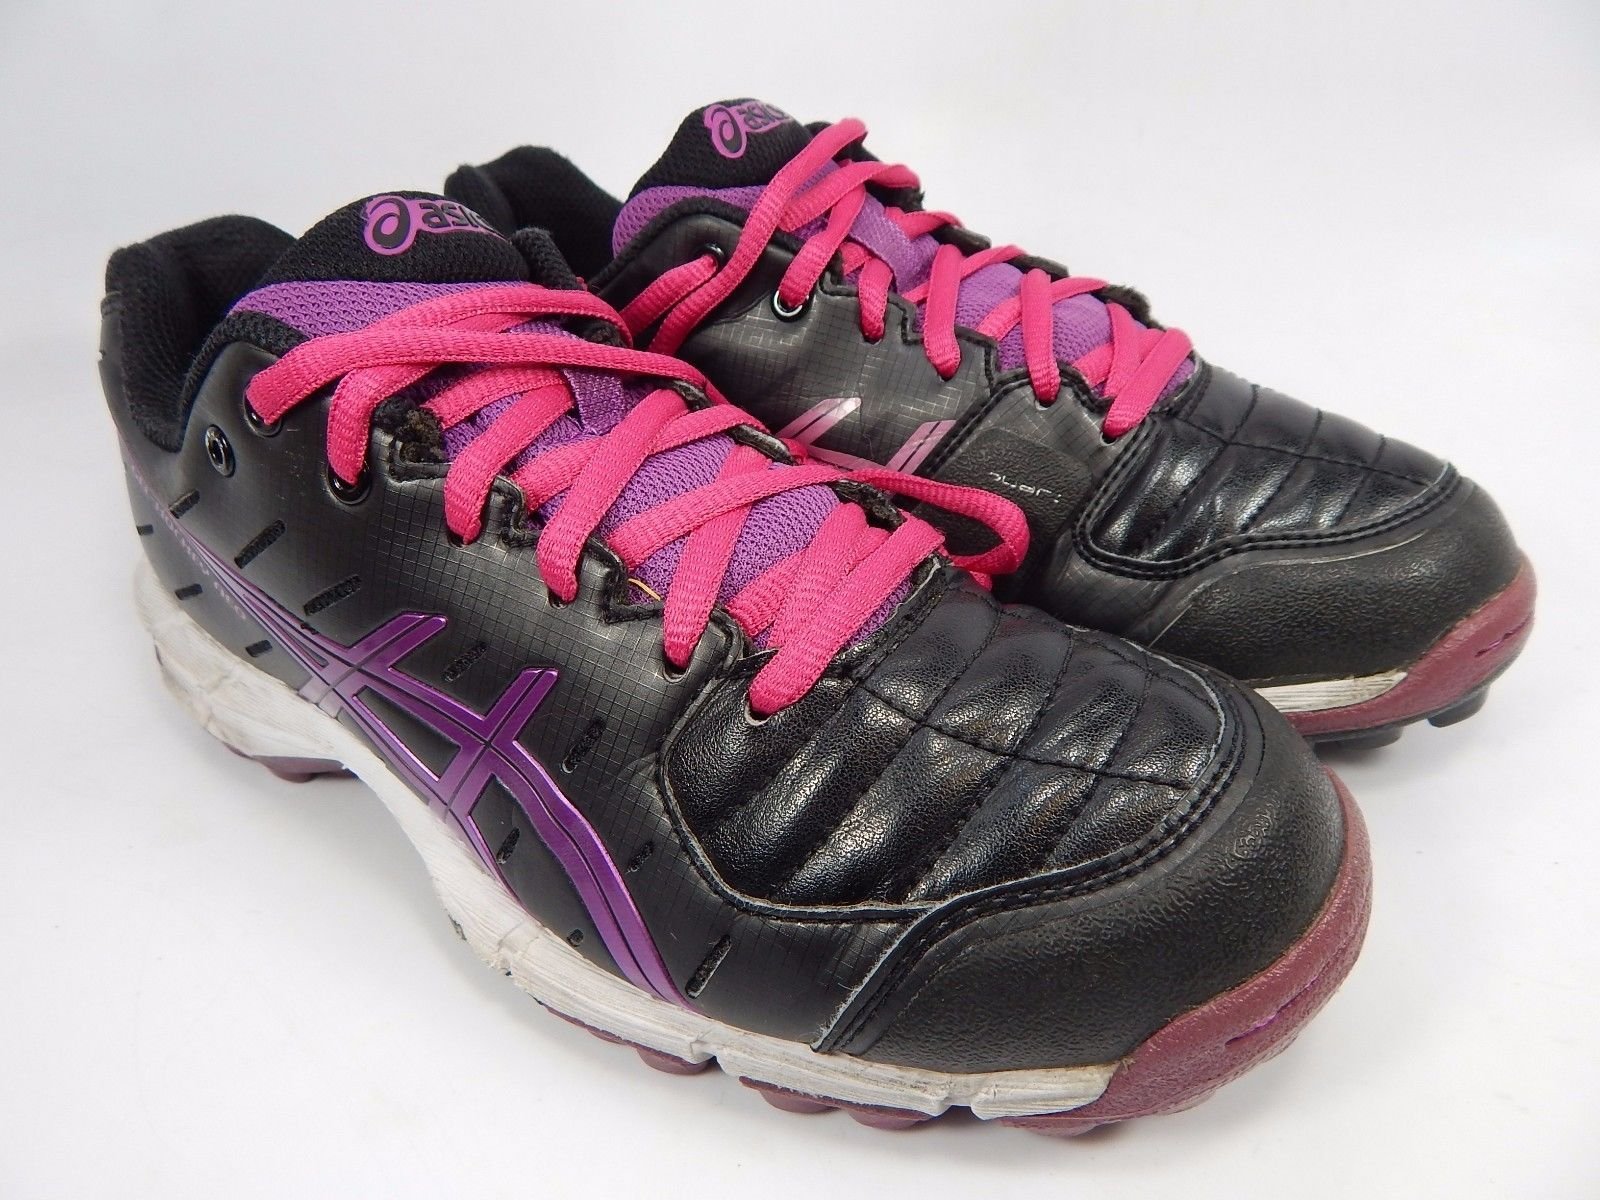 Asics Gel Hockey Neo Women's Cross Country Shoes Size US 6 M (B) EU 37 P450Y